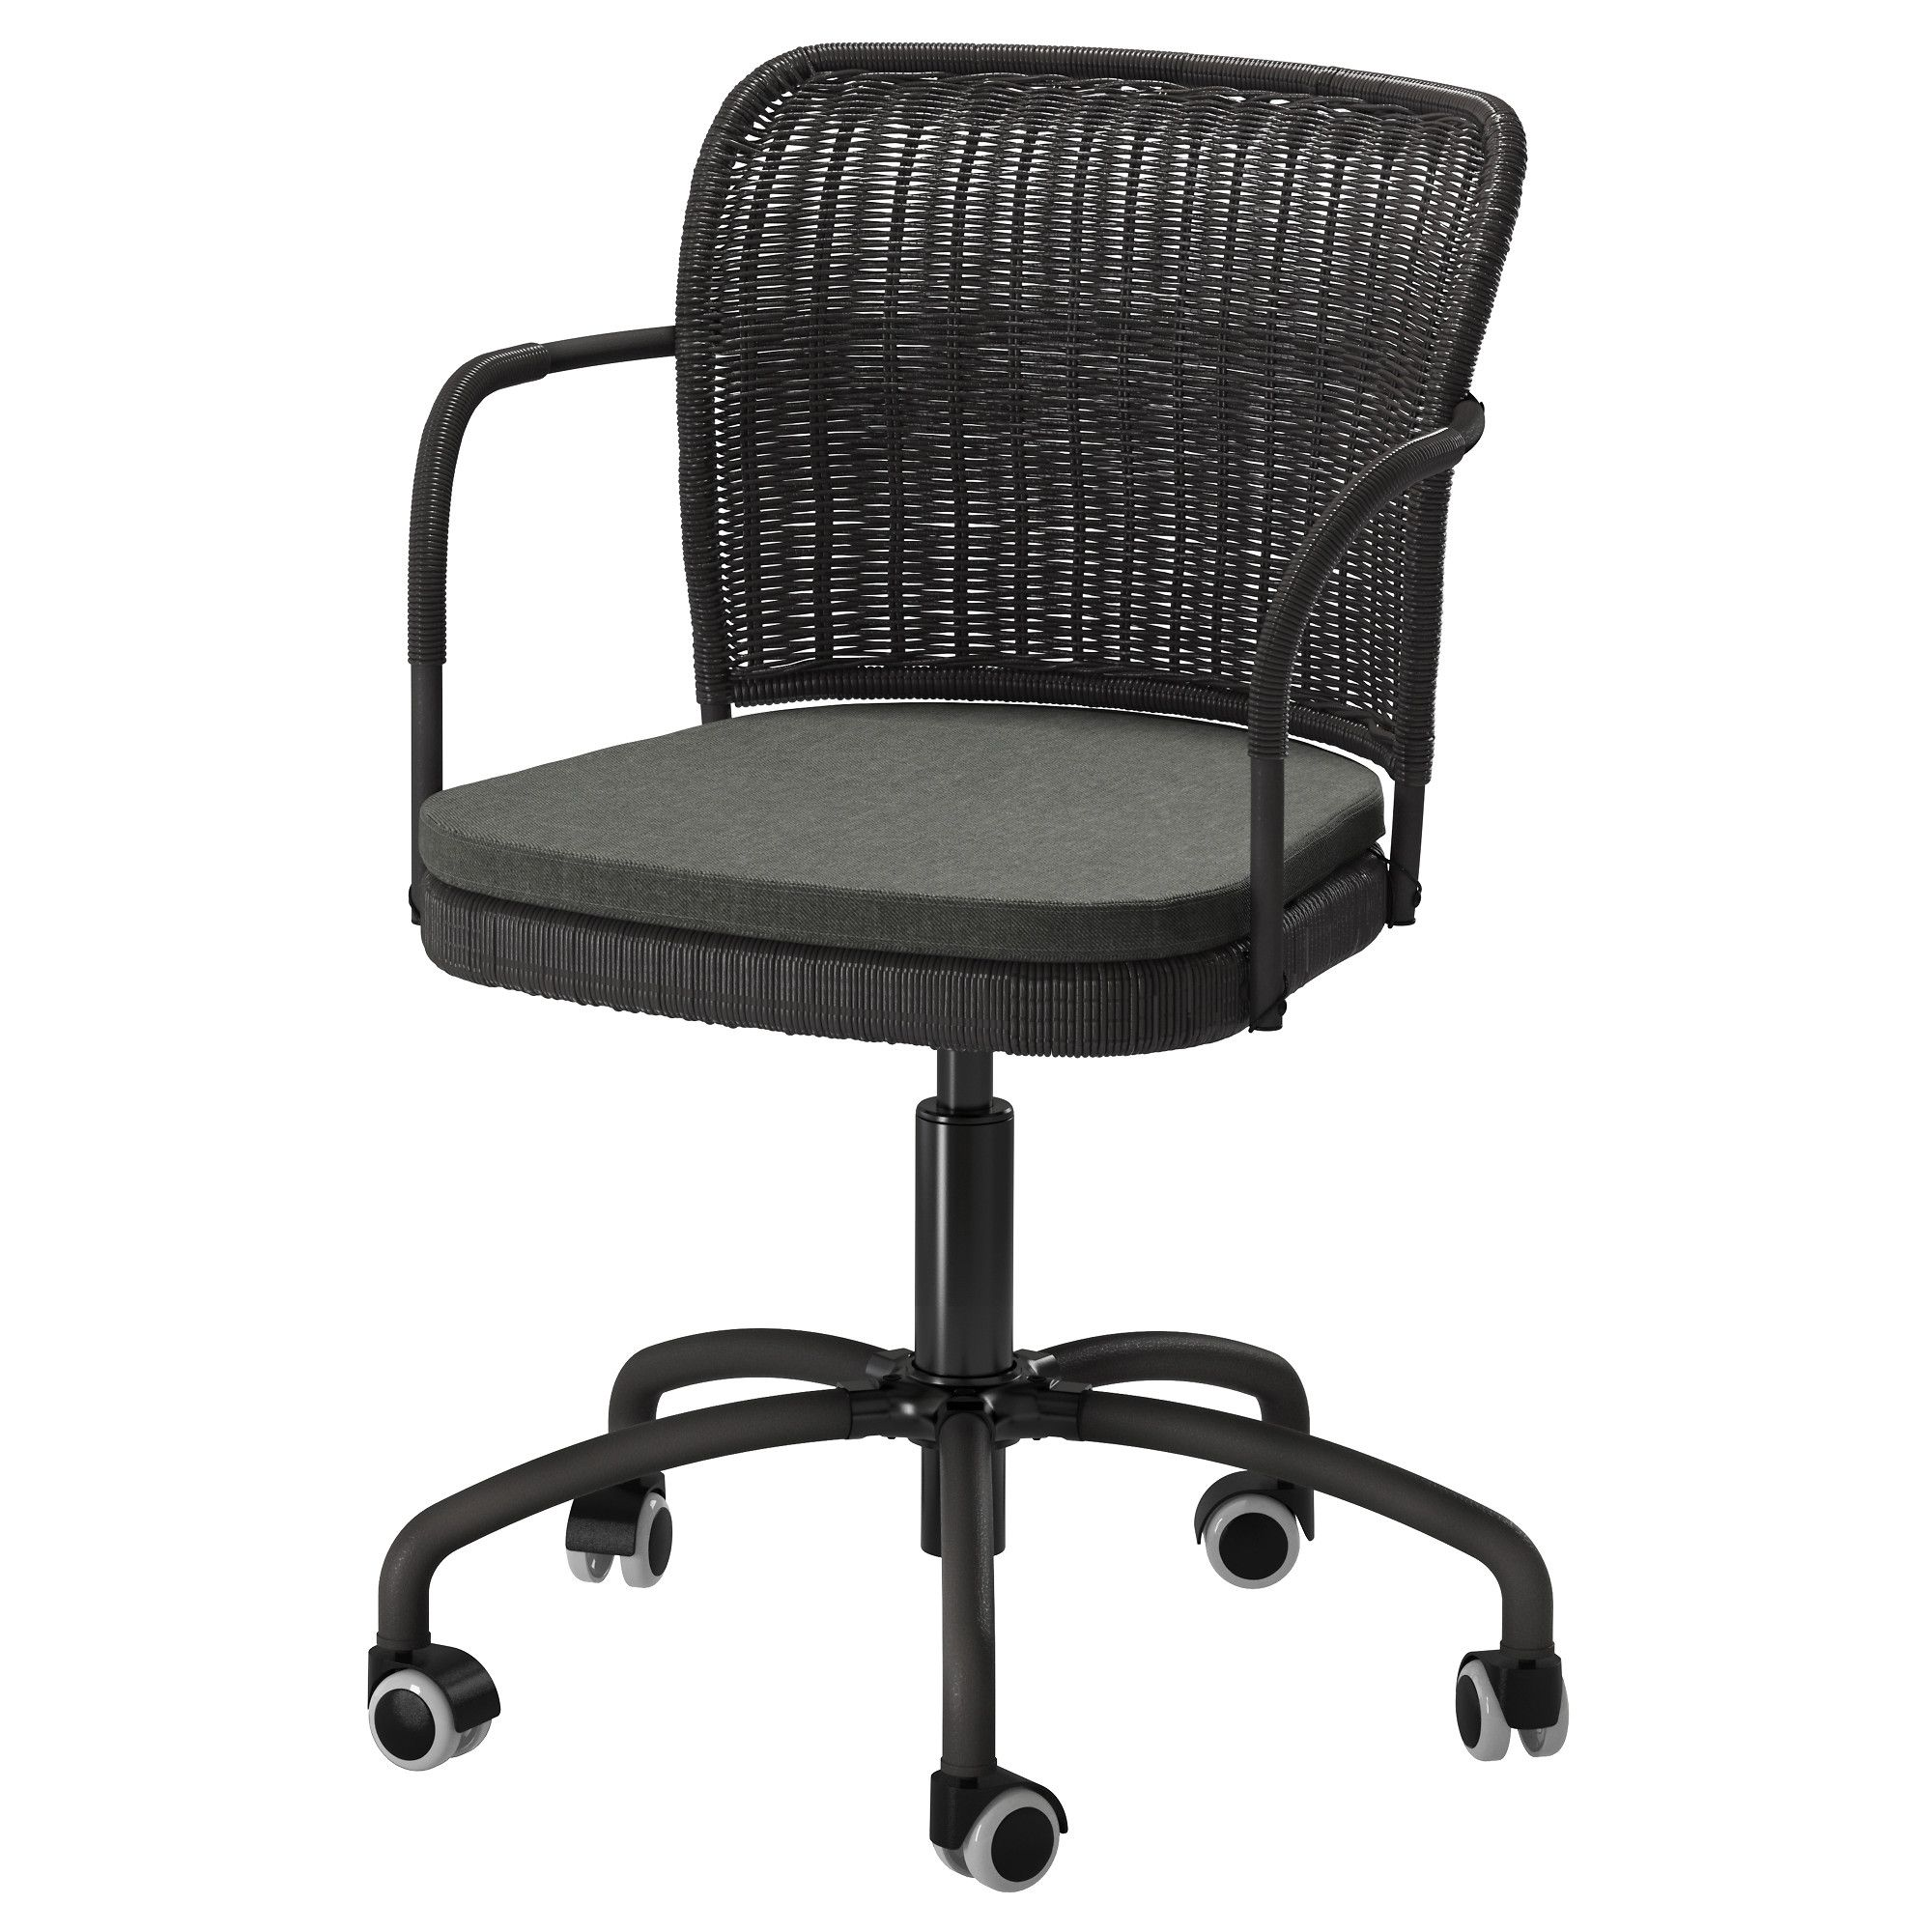 Australia (With images) Ikea desk chair